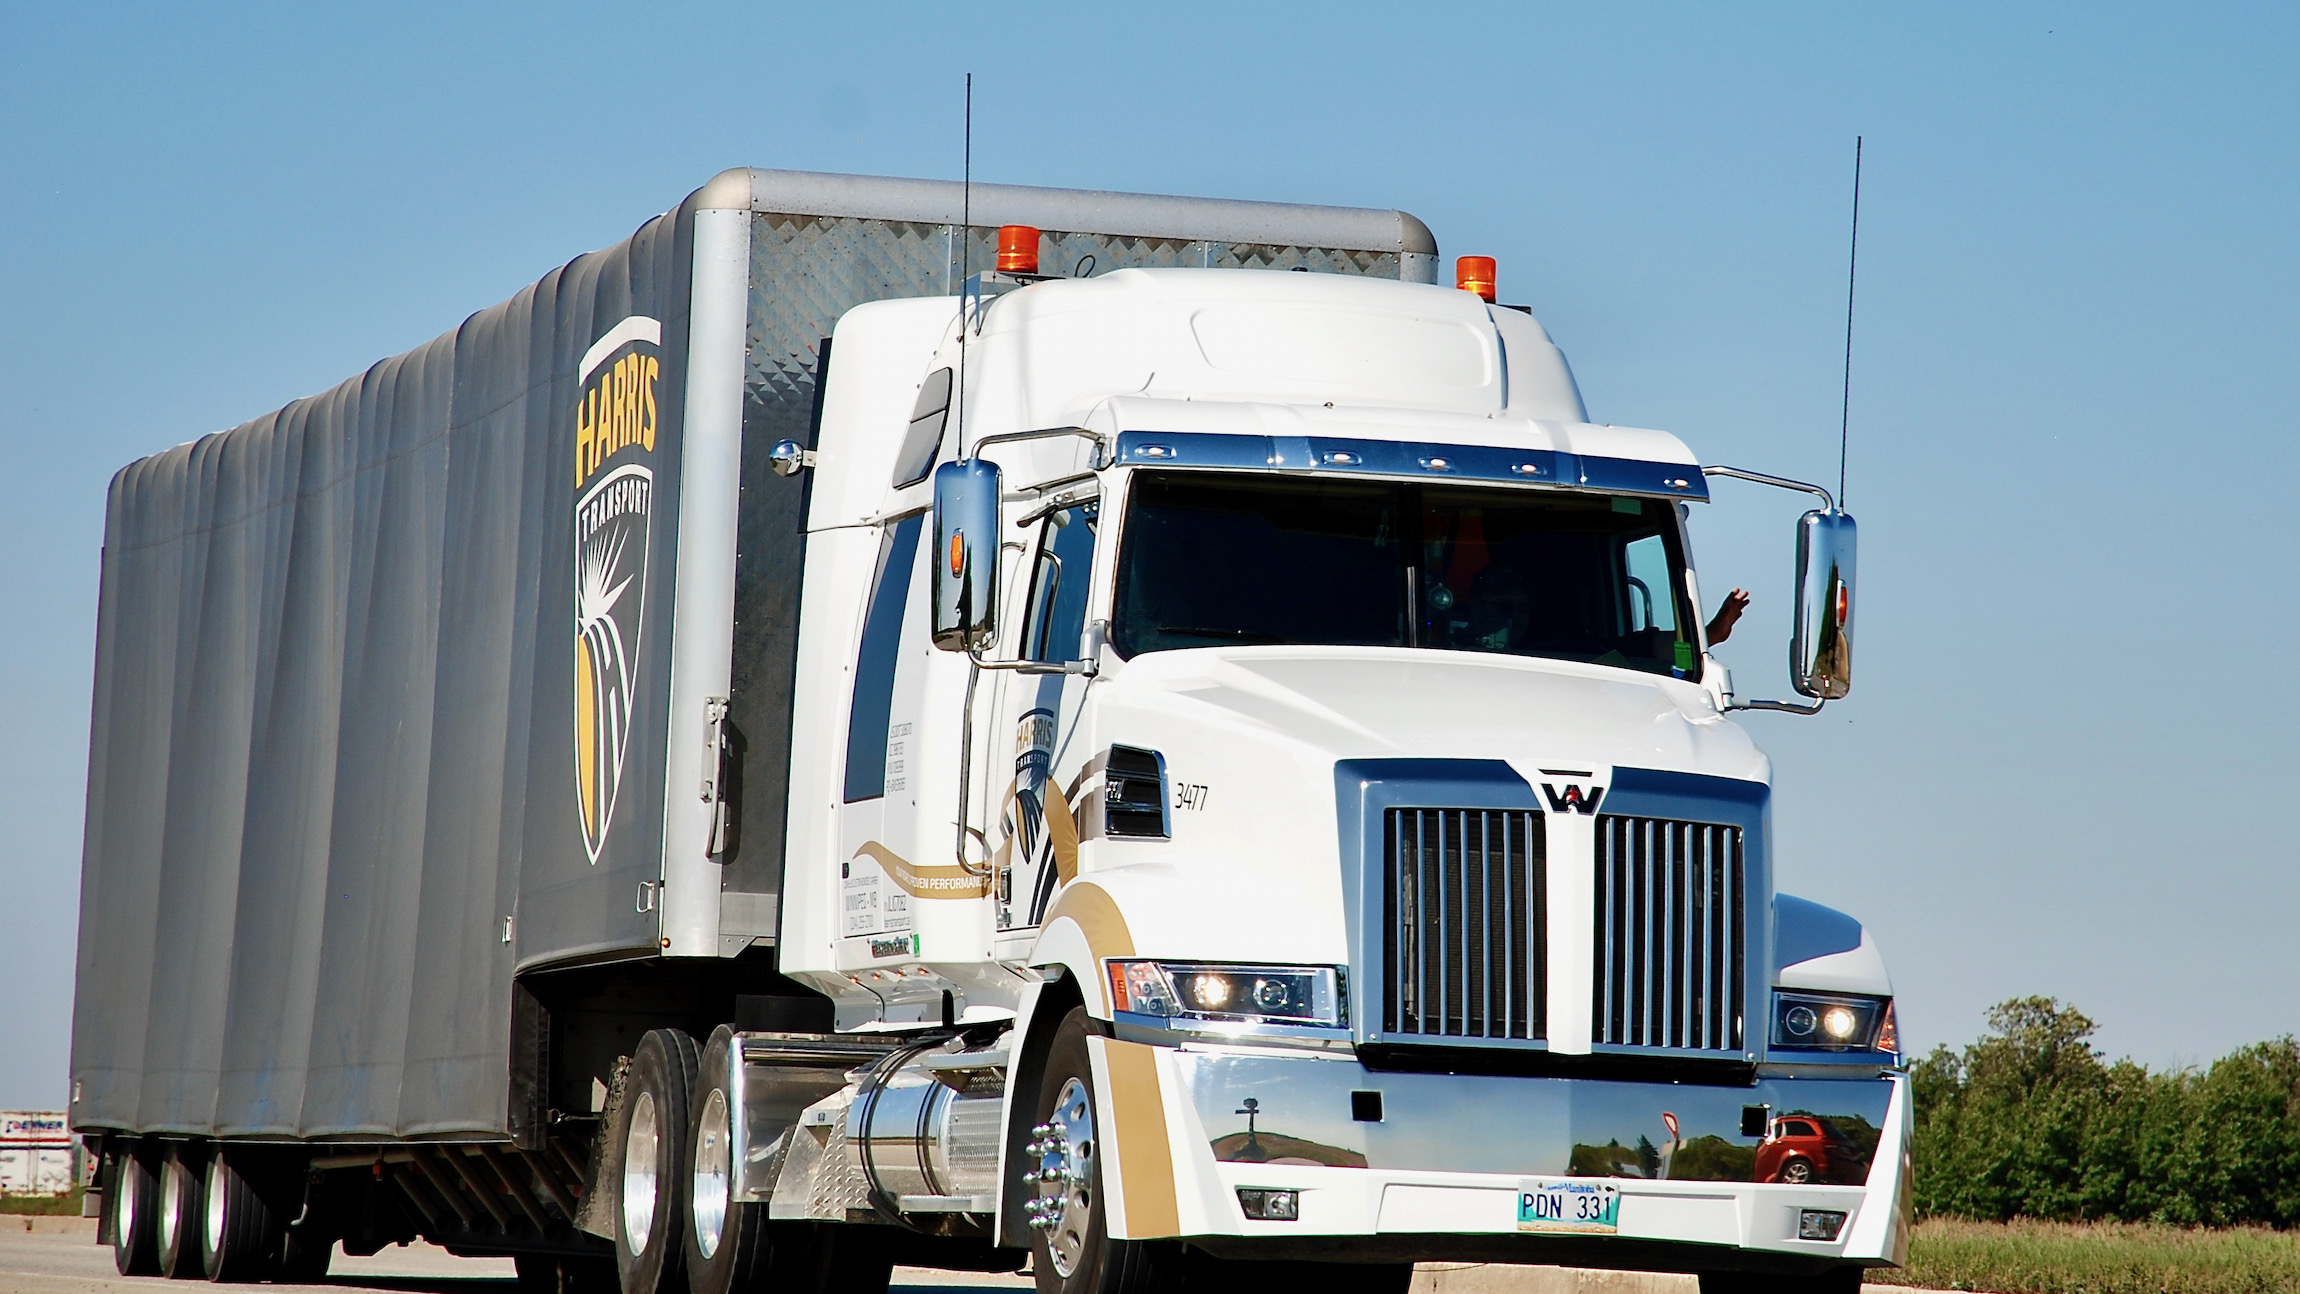 A white-tractor trailer of Harris Transport, a company recently bought by Mullen Group